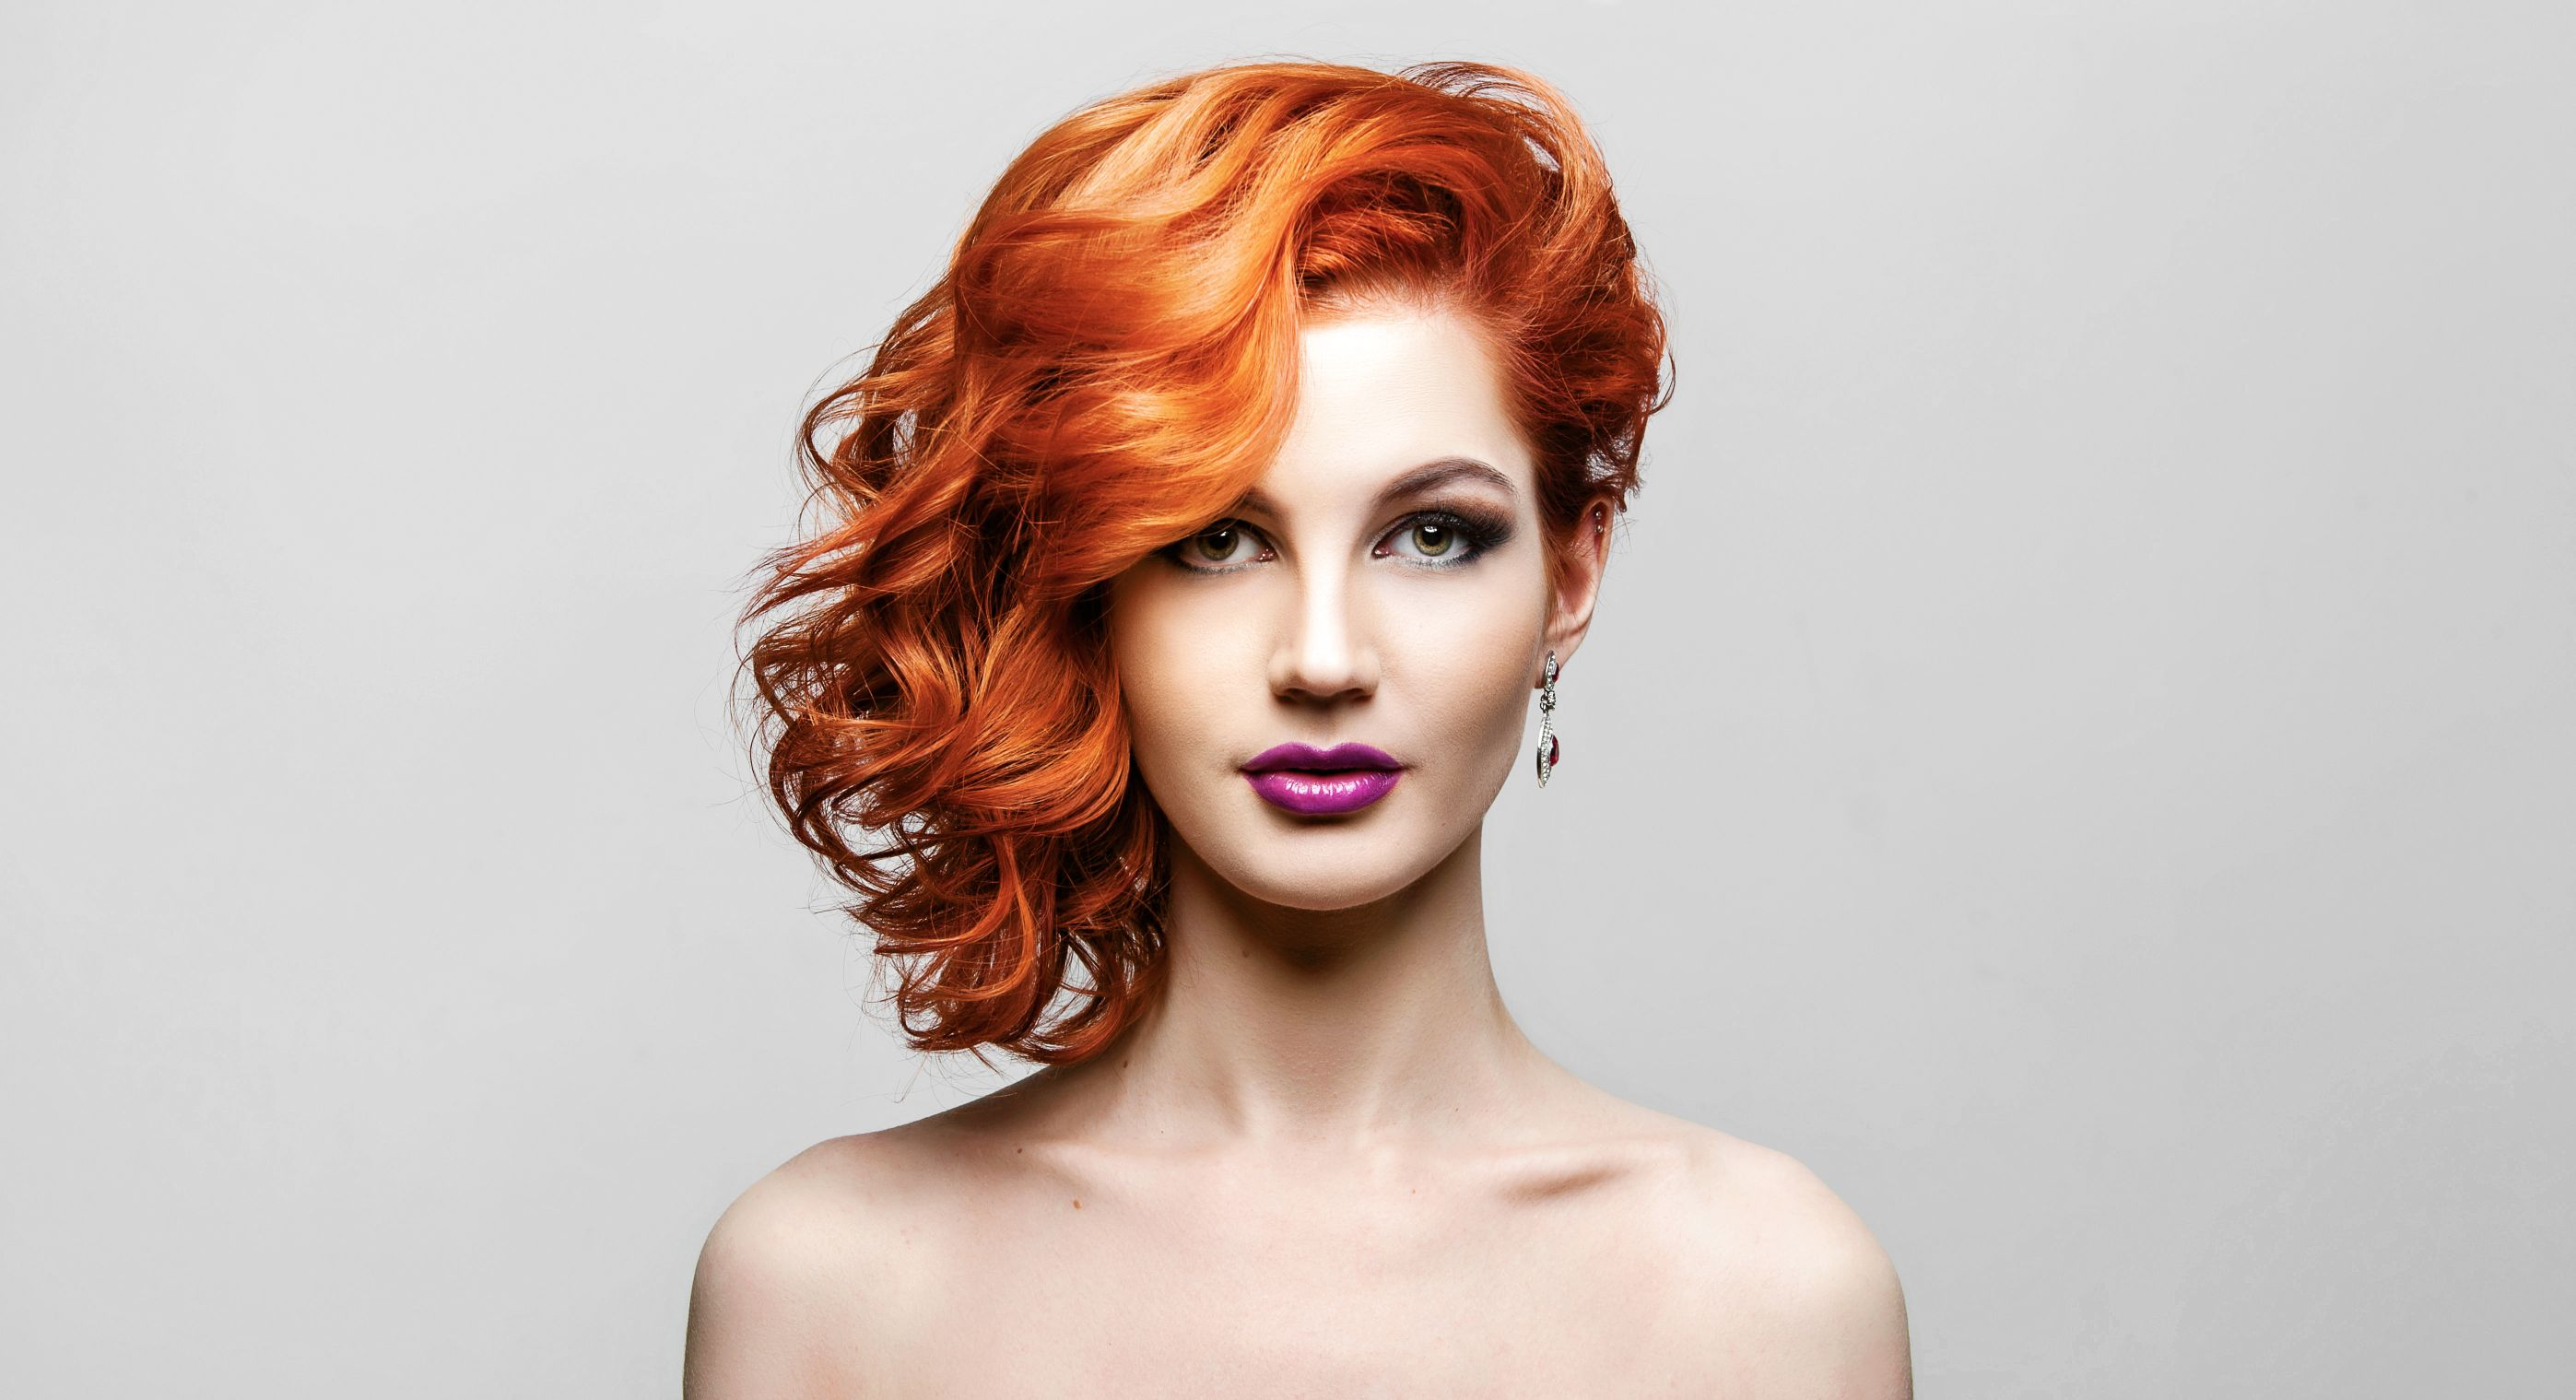 best-hair-styling-and-services-murray-ut-usa